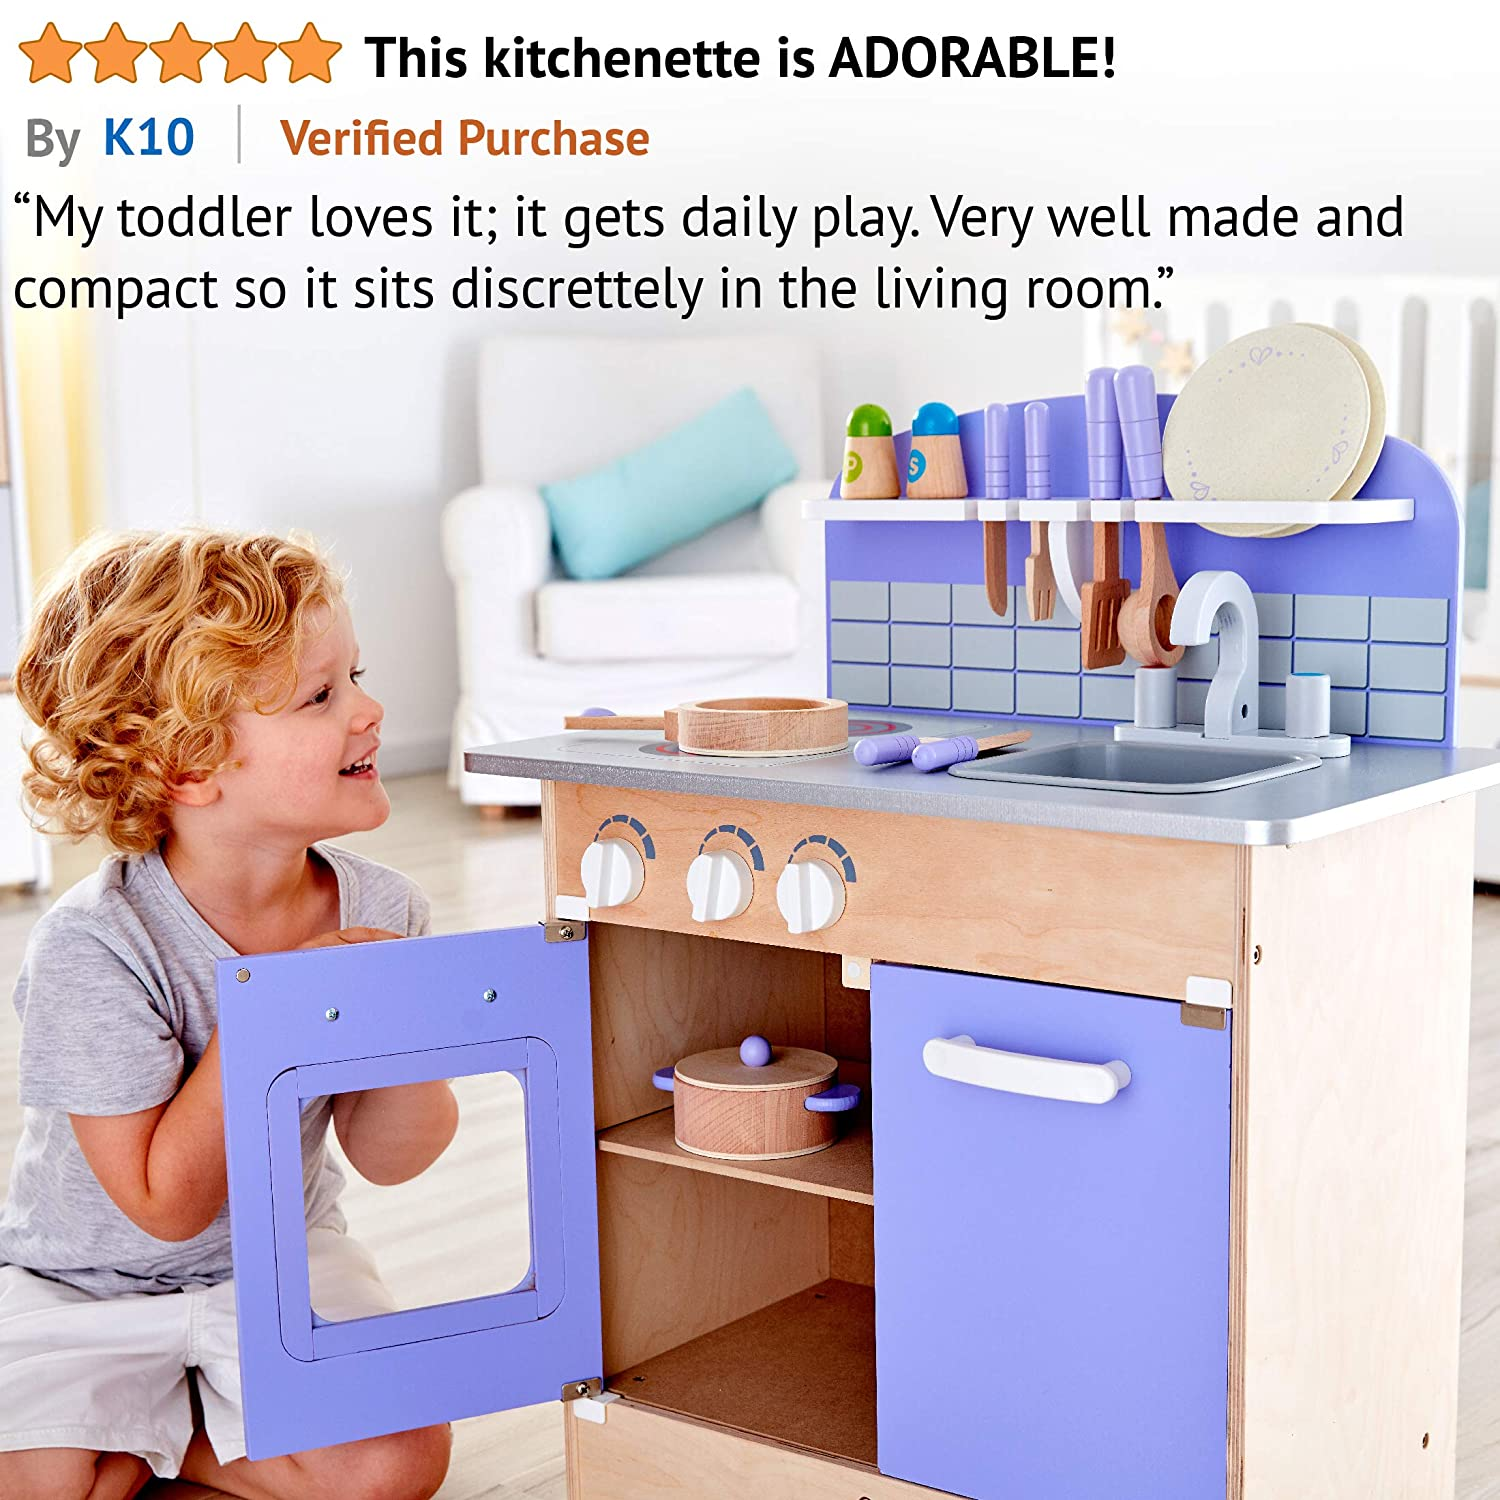 Hape Kitchen Sets of Kids Wooden Toys Kitchen Playset with 13 Toy Kitchen Accessories for Kids Kitchen Set for Toddlers USA Toyz Play Kitchen Set